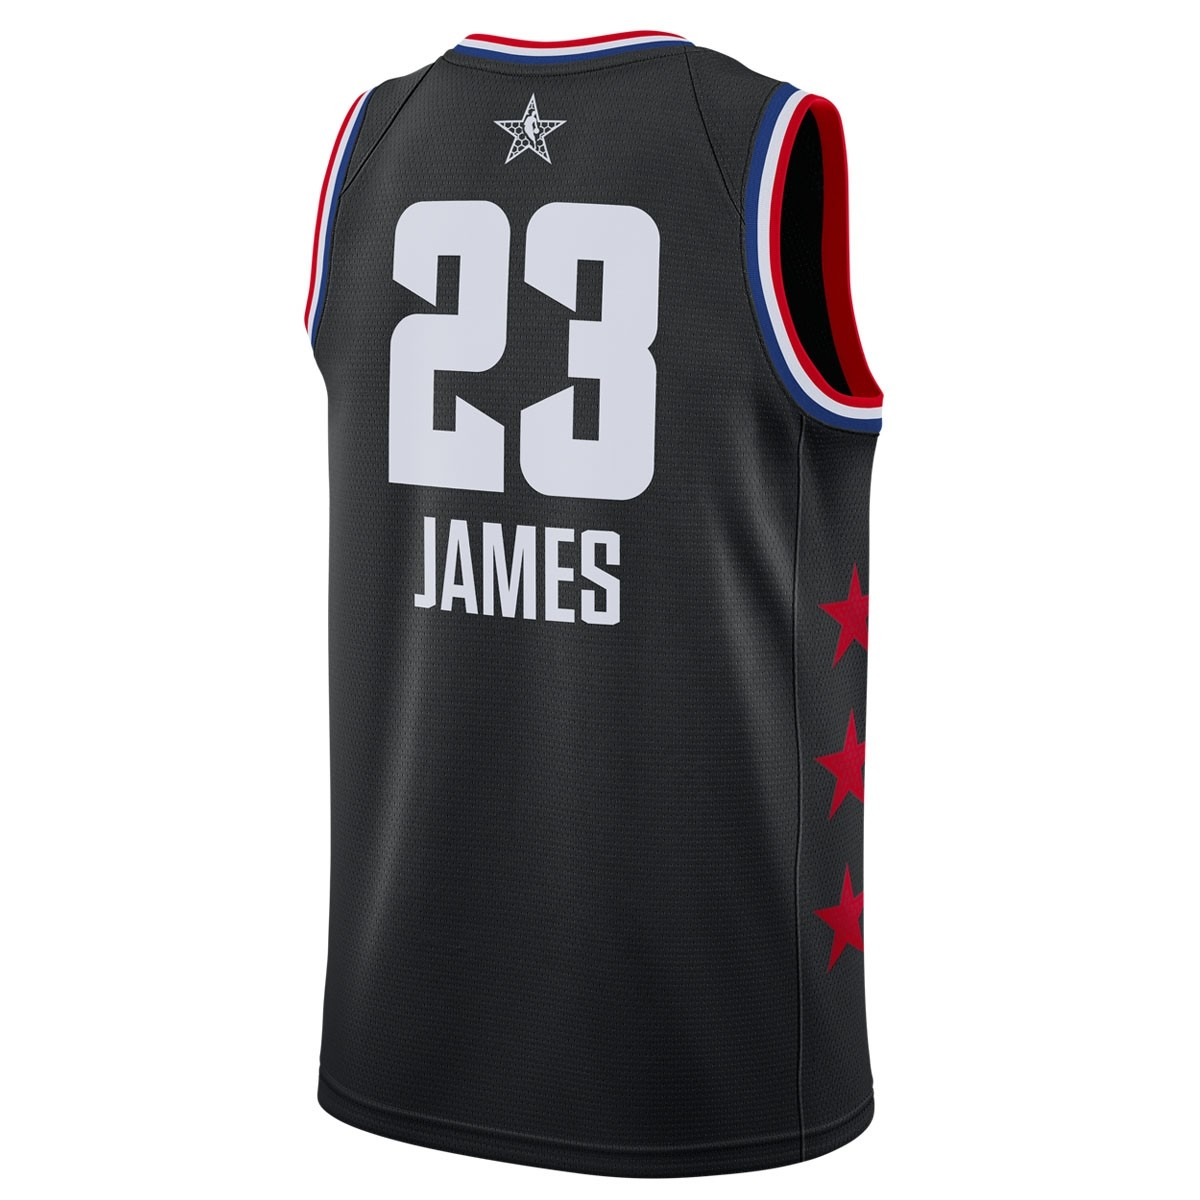 Jordan Swigman Jersey All-Star James Edition 'Black' AQ7295-017